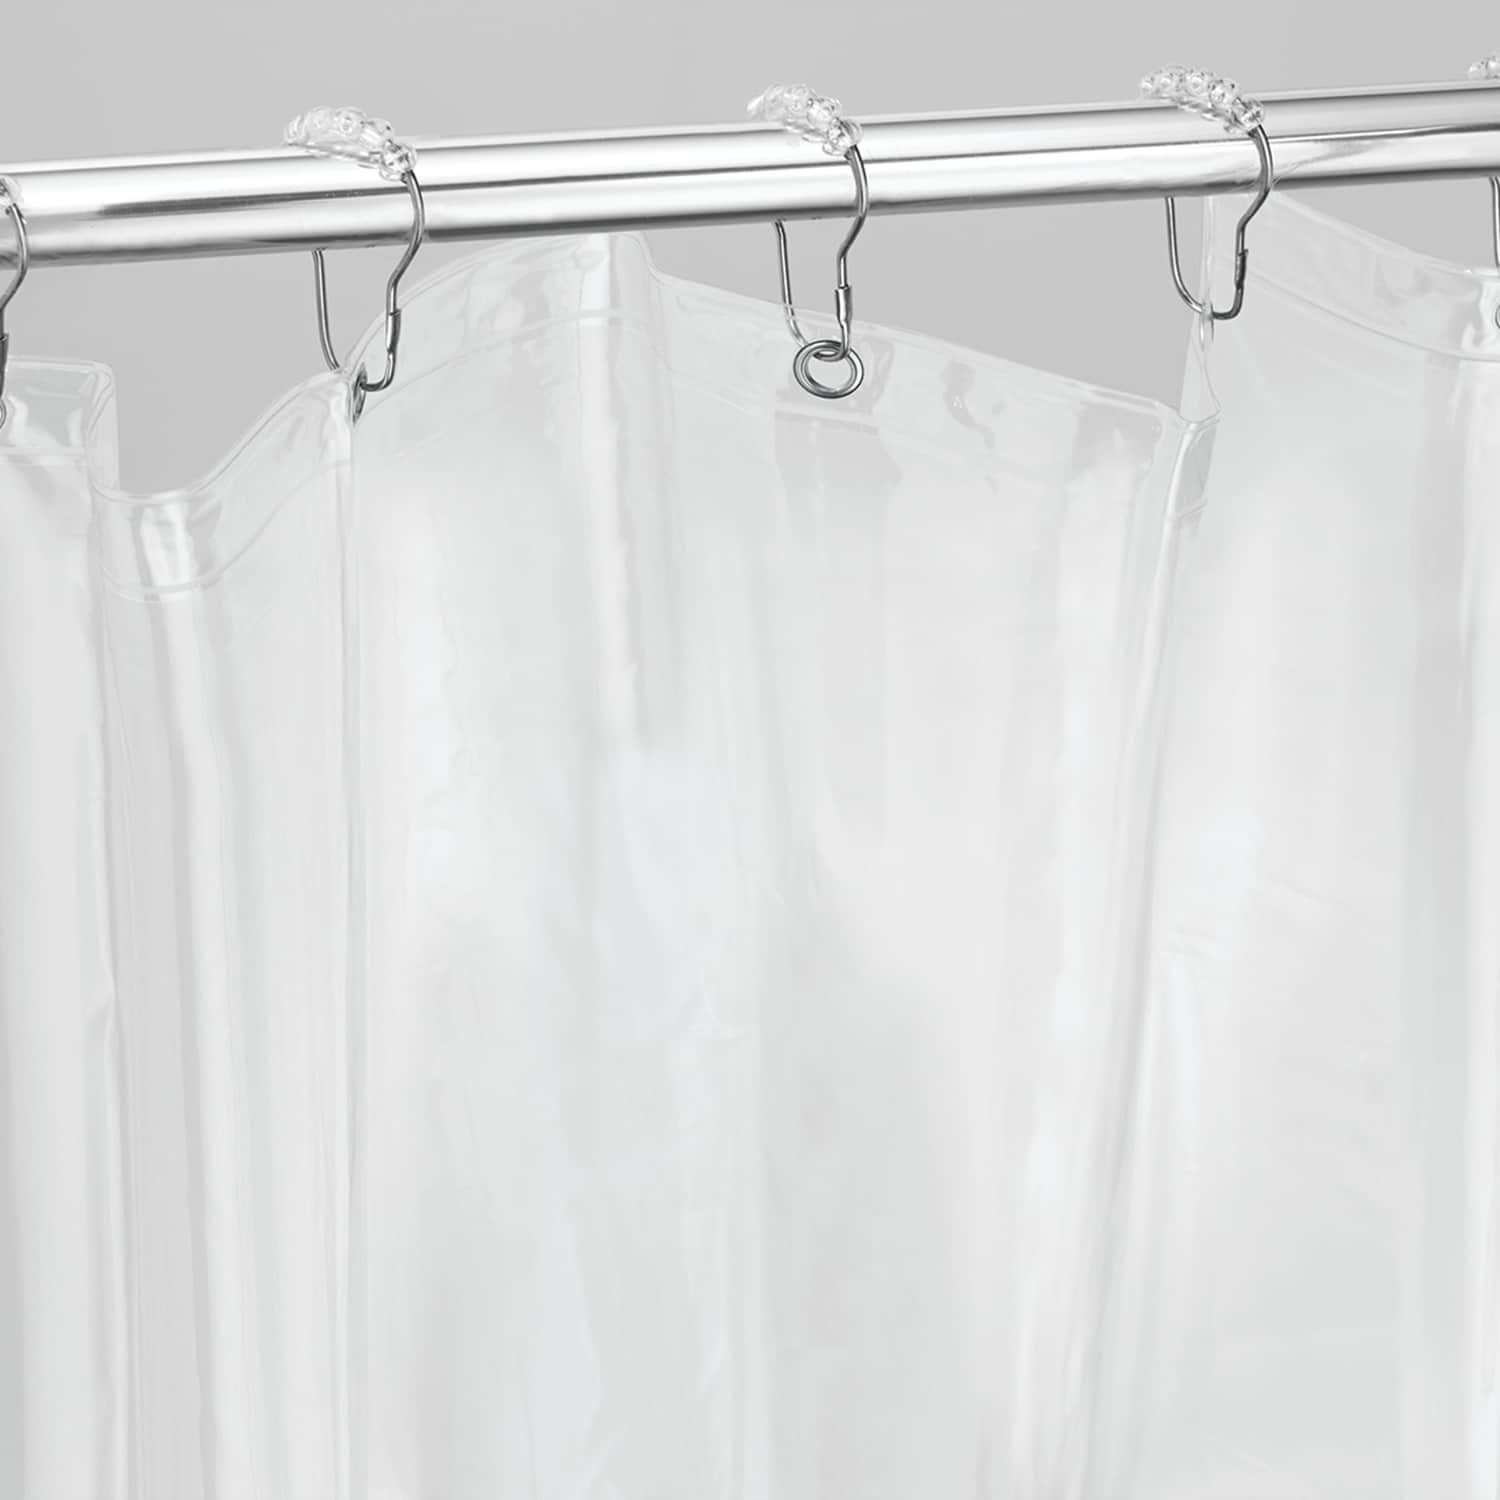 Interdesign Extra Wide Vinyl Bathroom Shower Curtain Liner Rings